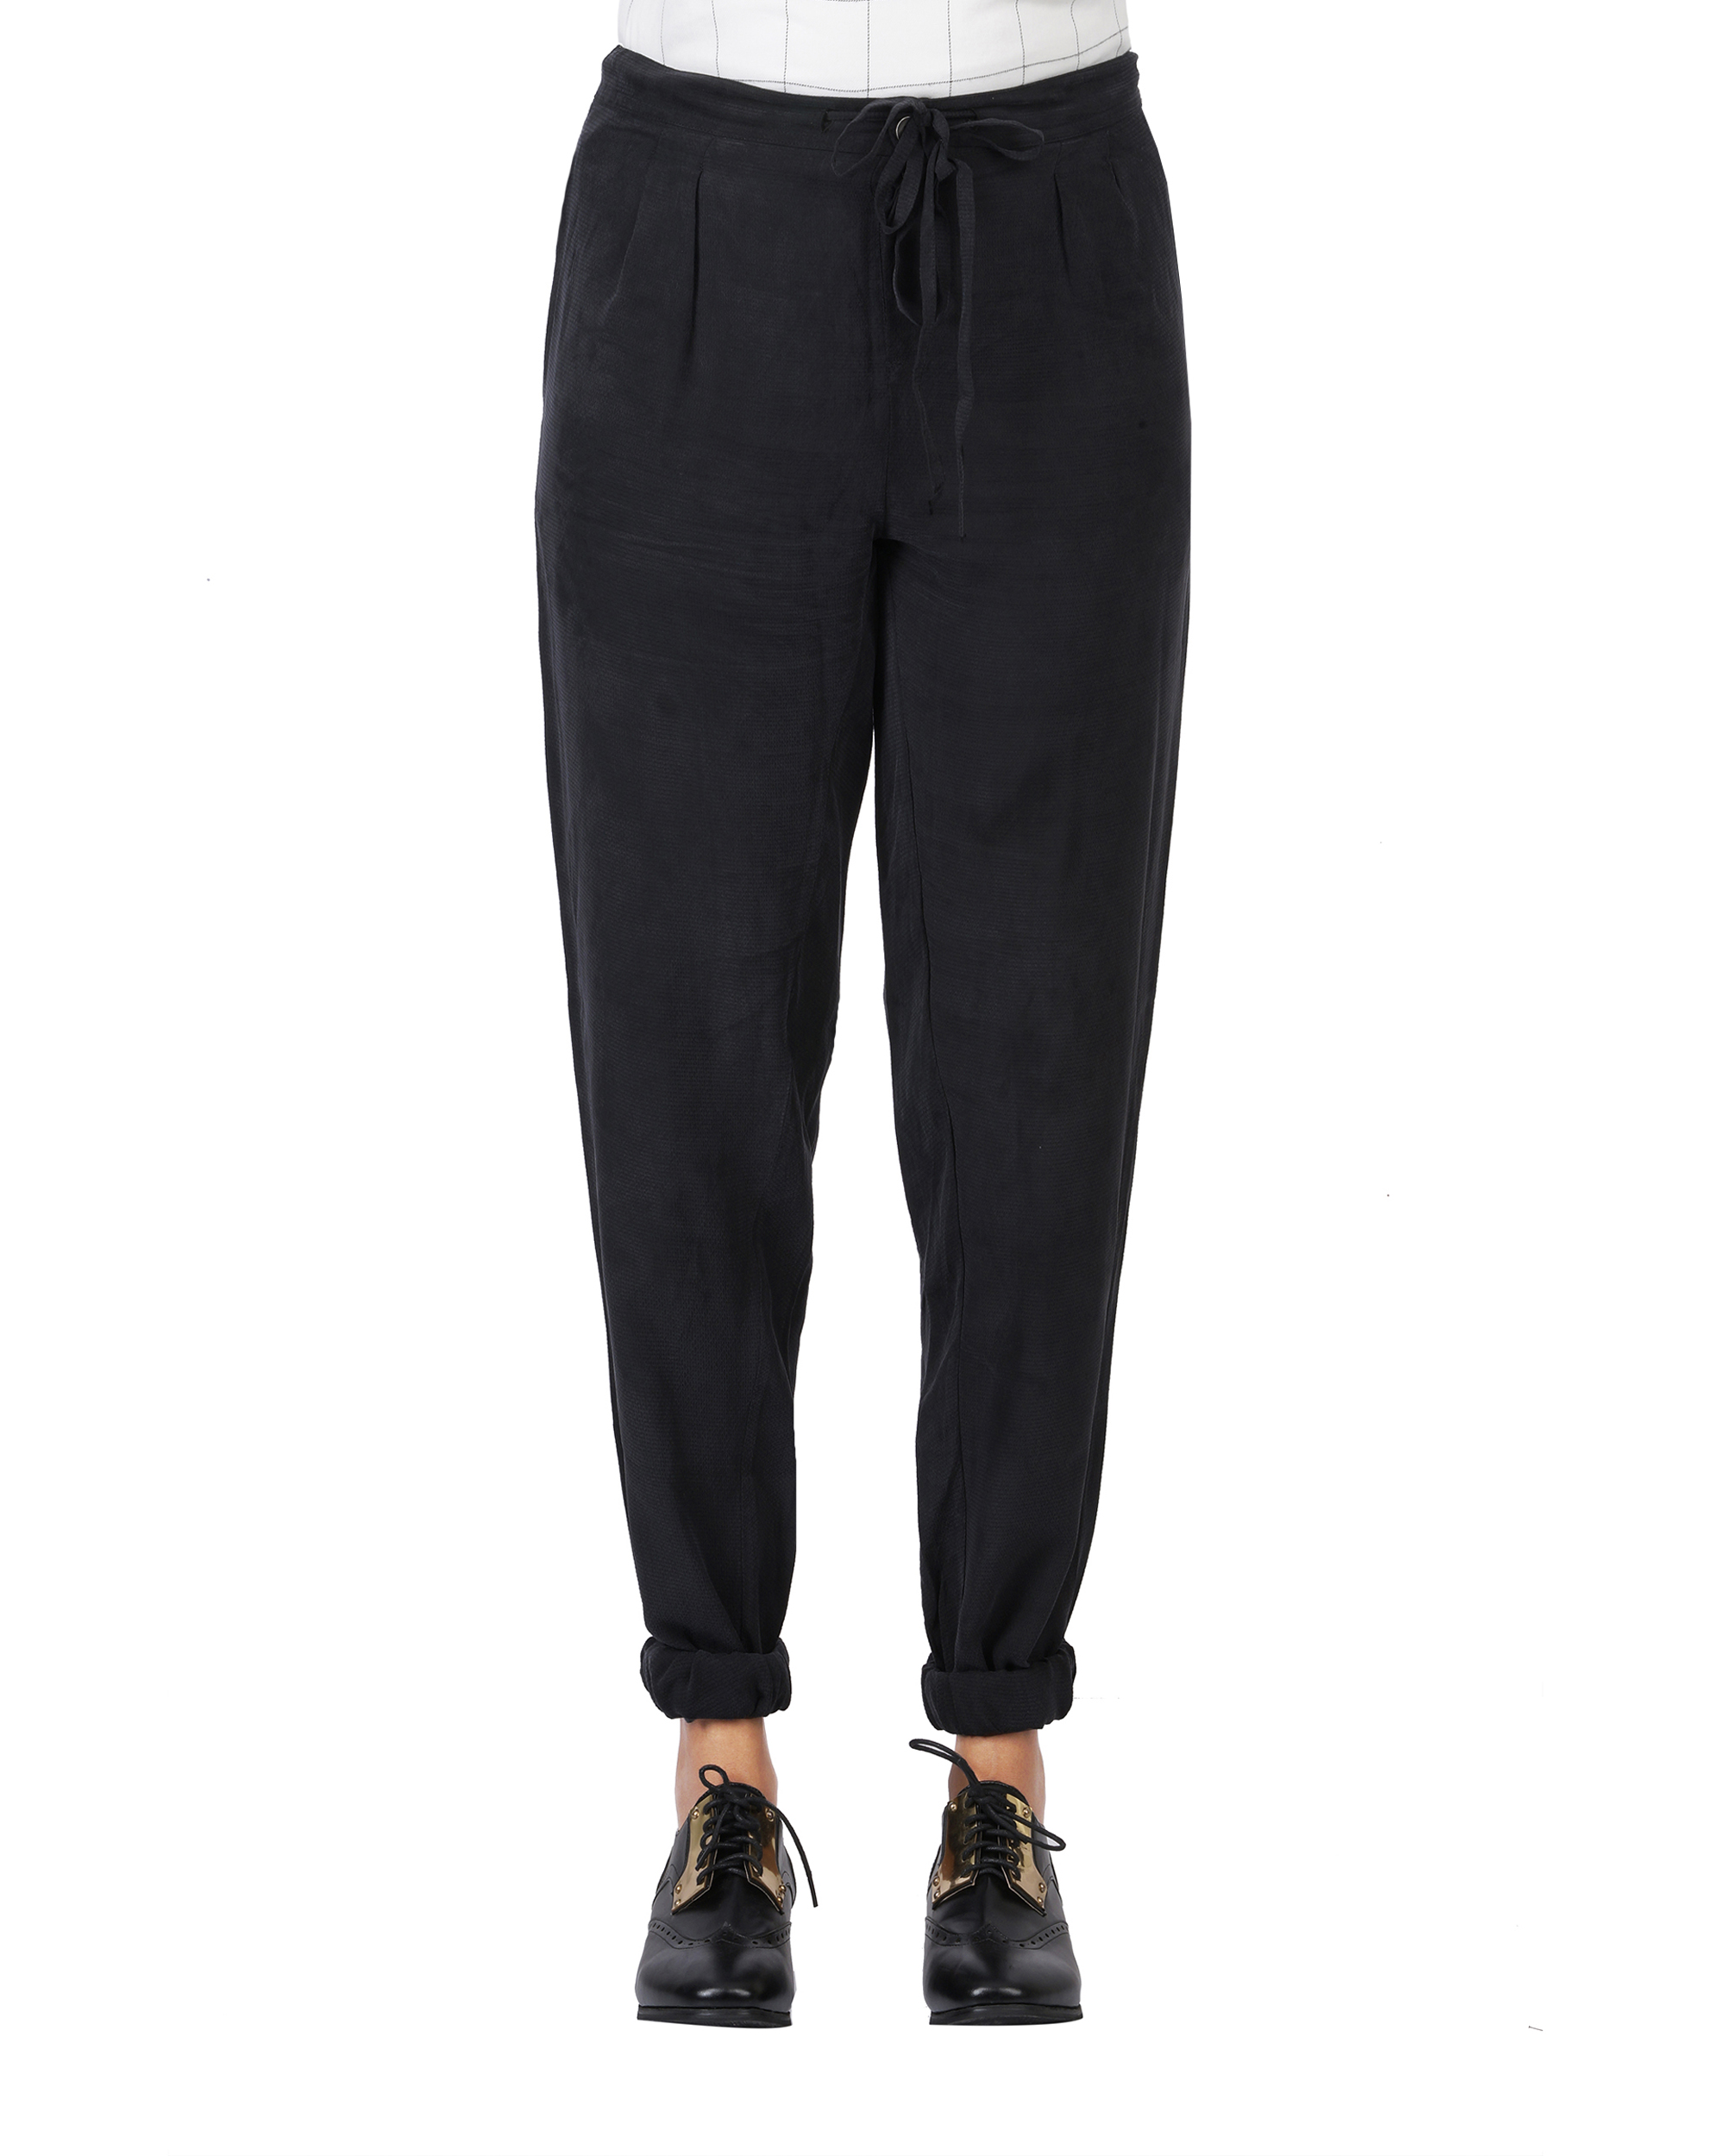 Front pleated cupro  pants with elasticated bottom hem